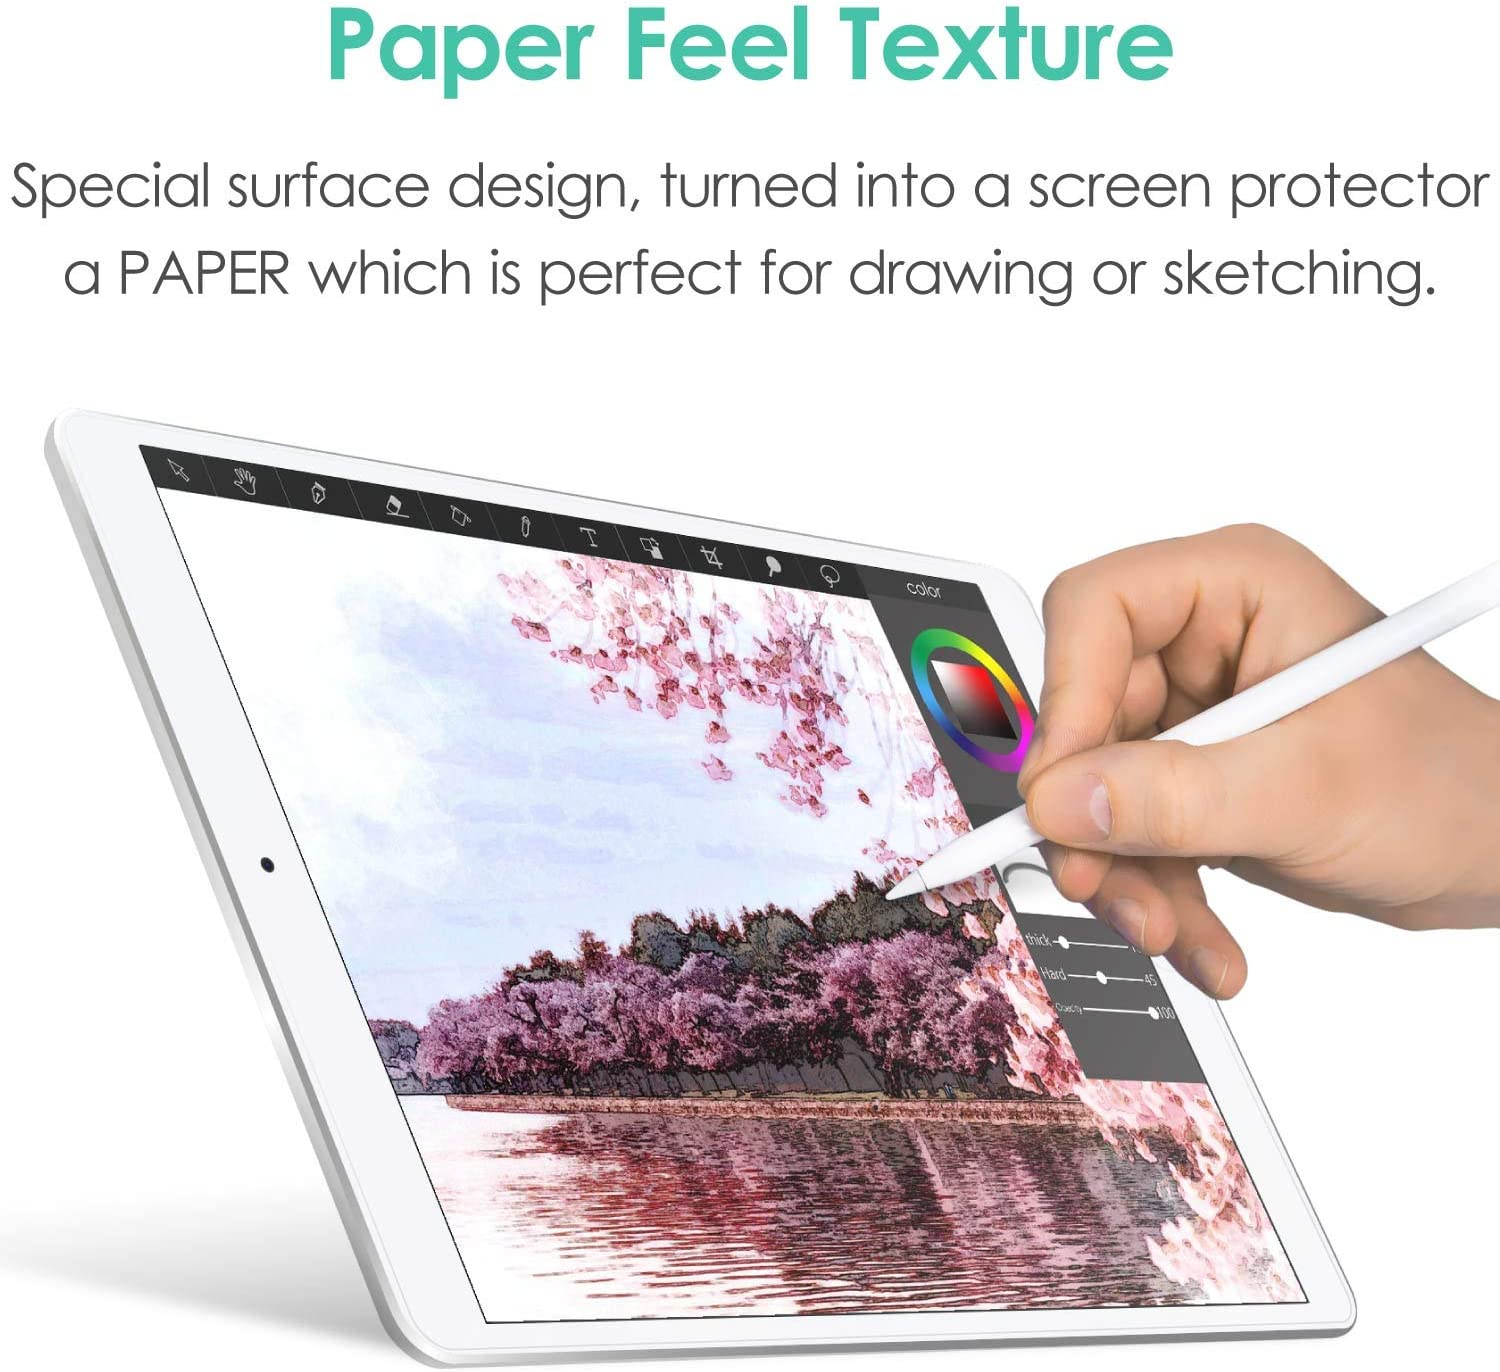 // Drawing iPad PRO ELECOM-Japan Brand- Paper-Feel Screen Protector Compatible with 10.5 inch iPad//iPad Air Anti Glare Scratch Resistant//Smooth Type//TB-A19PS105-W 2019 2017